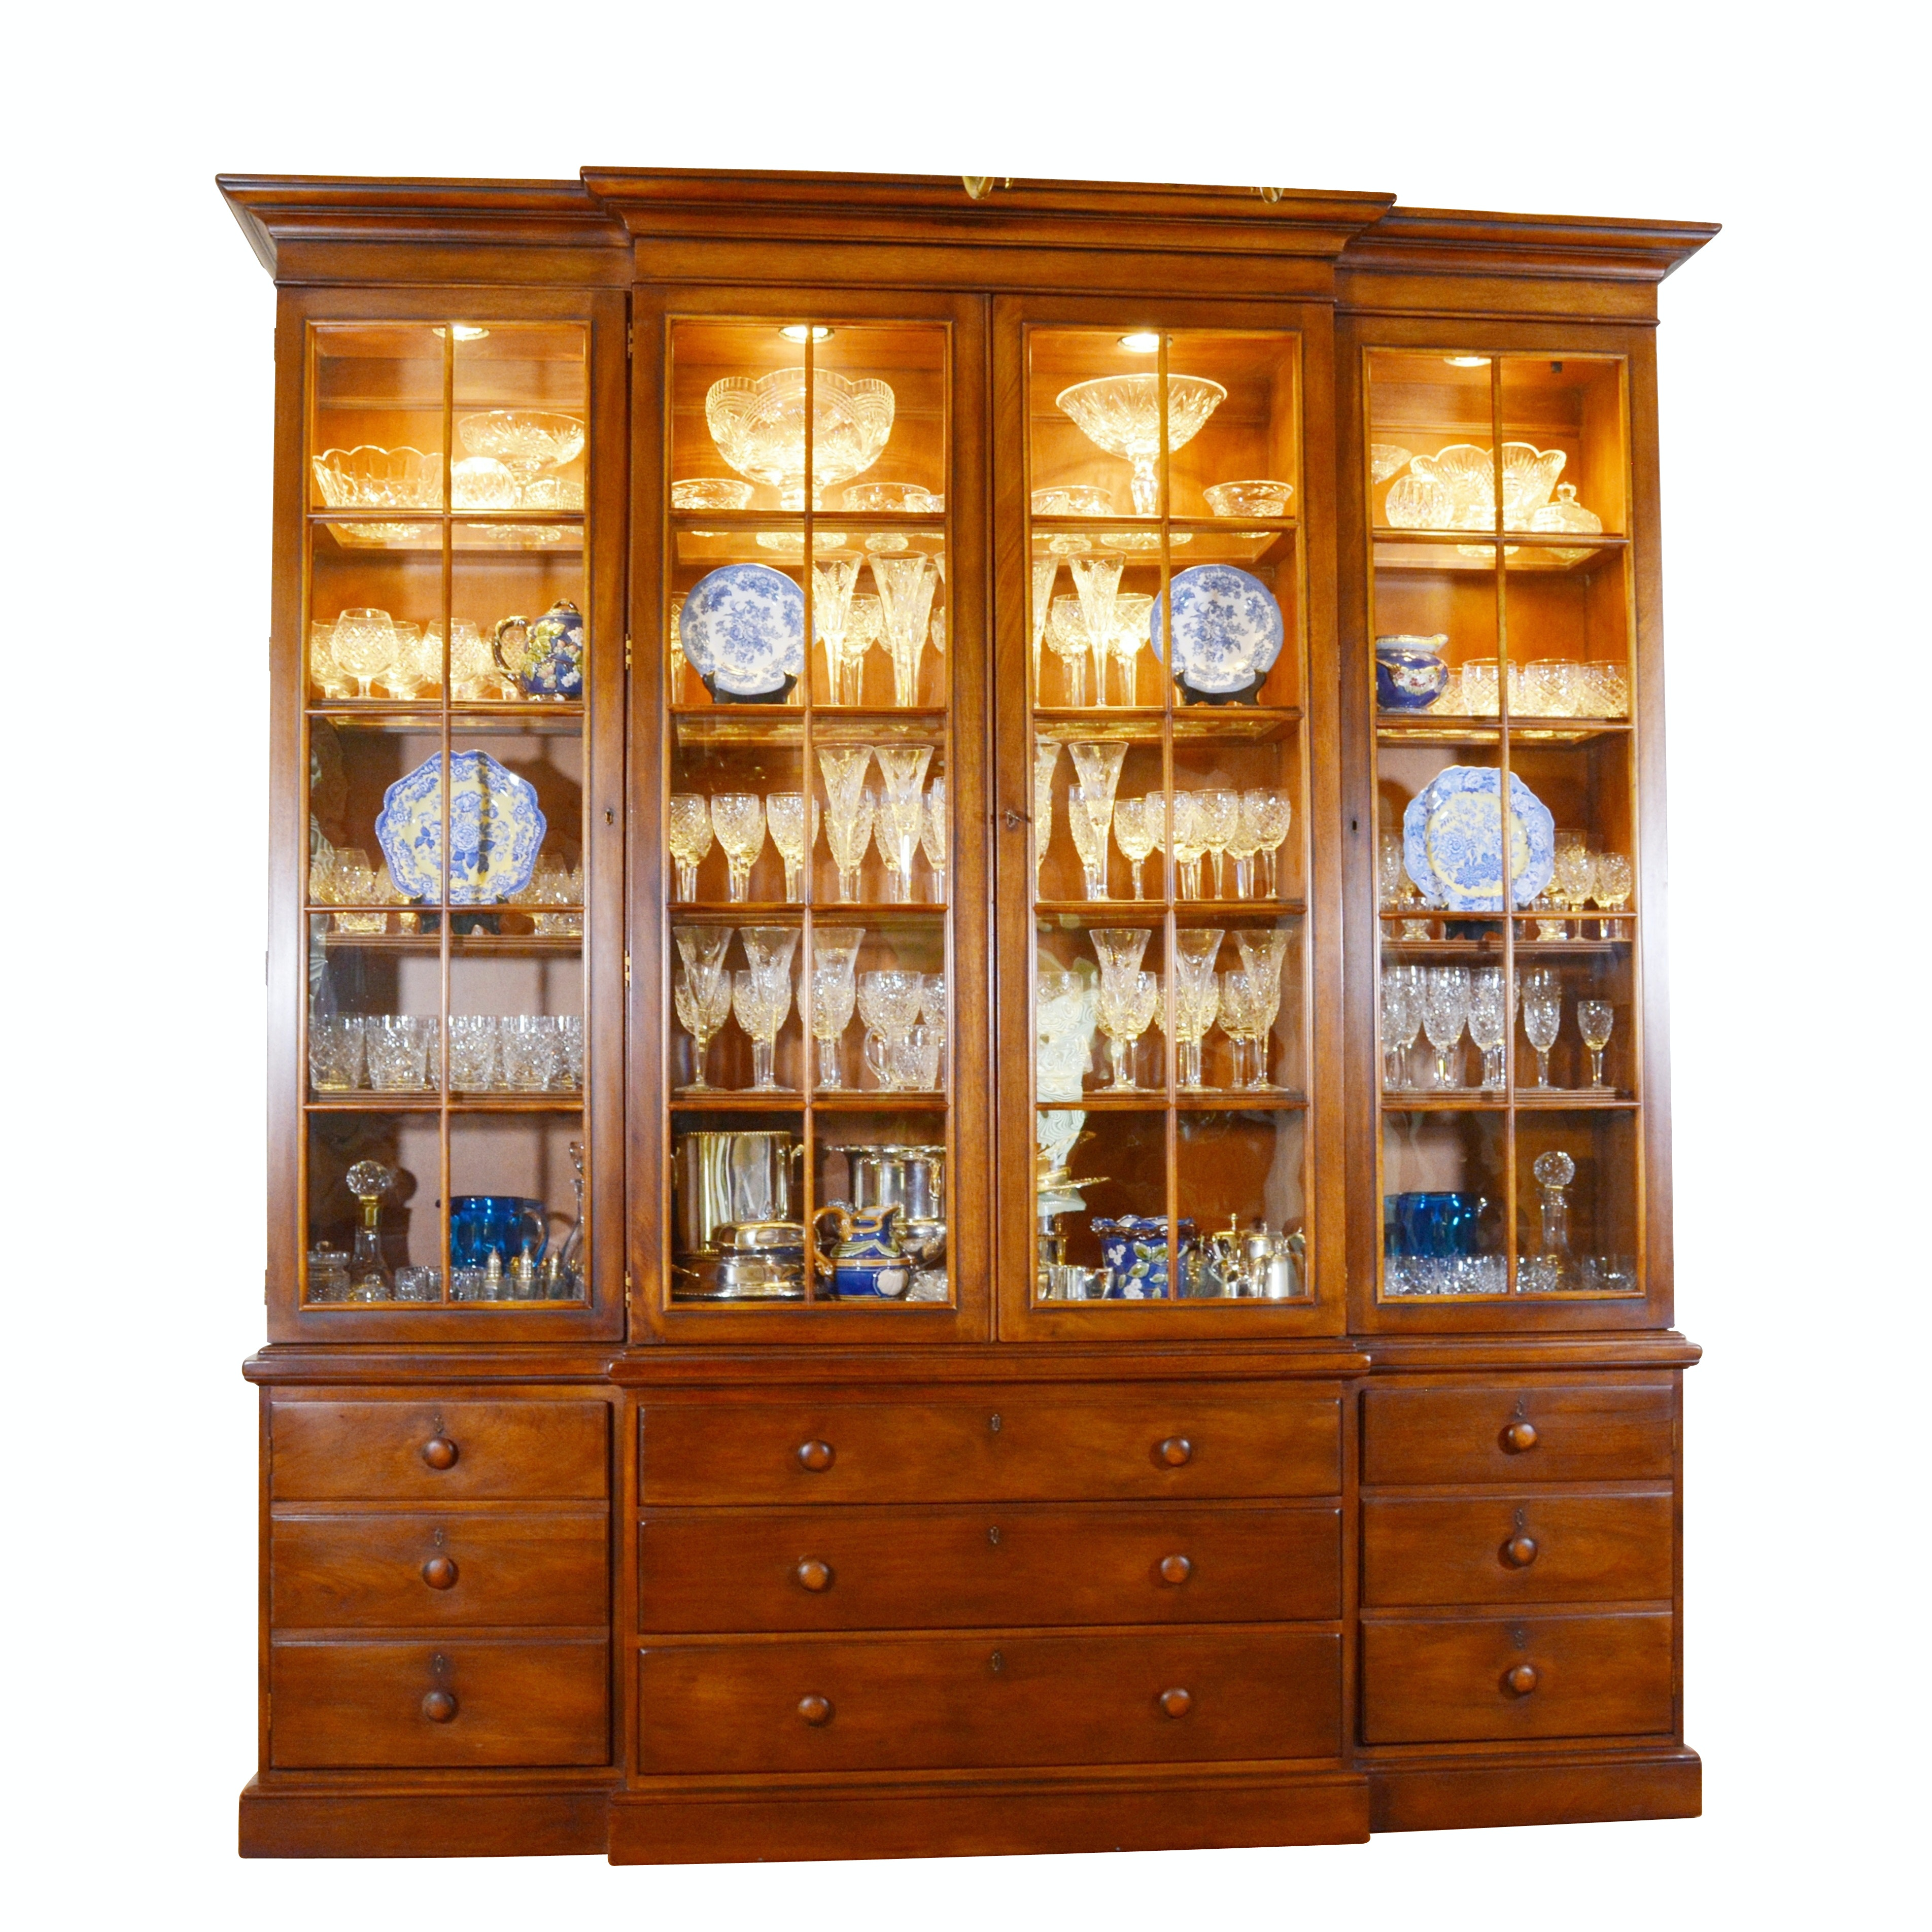 Contemporary Breakfront China Cabinet by Henredon Registry, First Edition, No 12